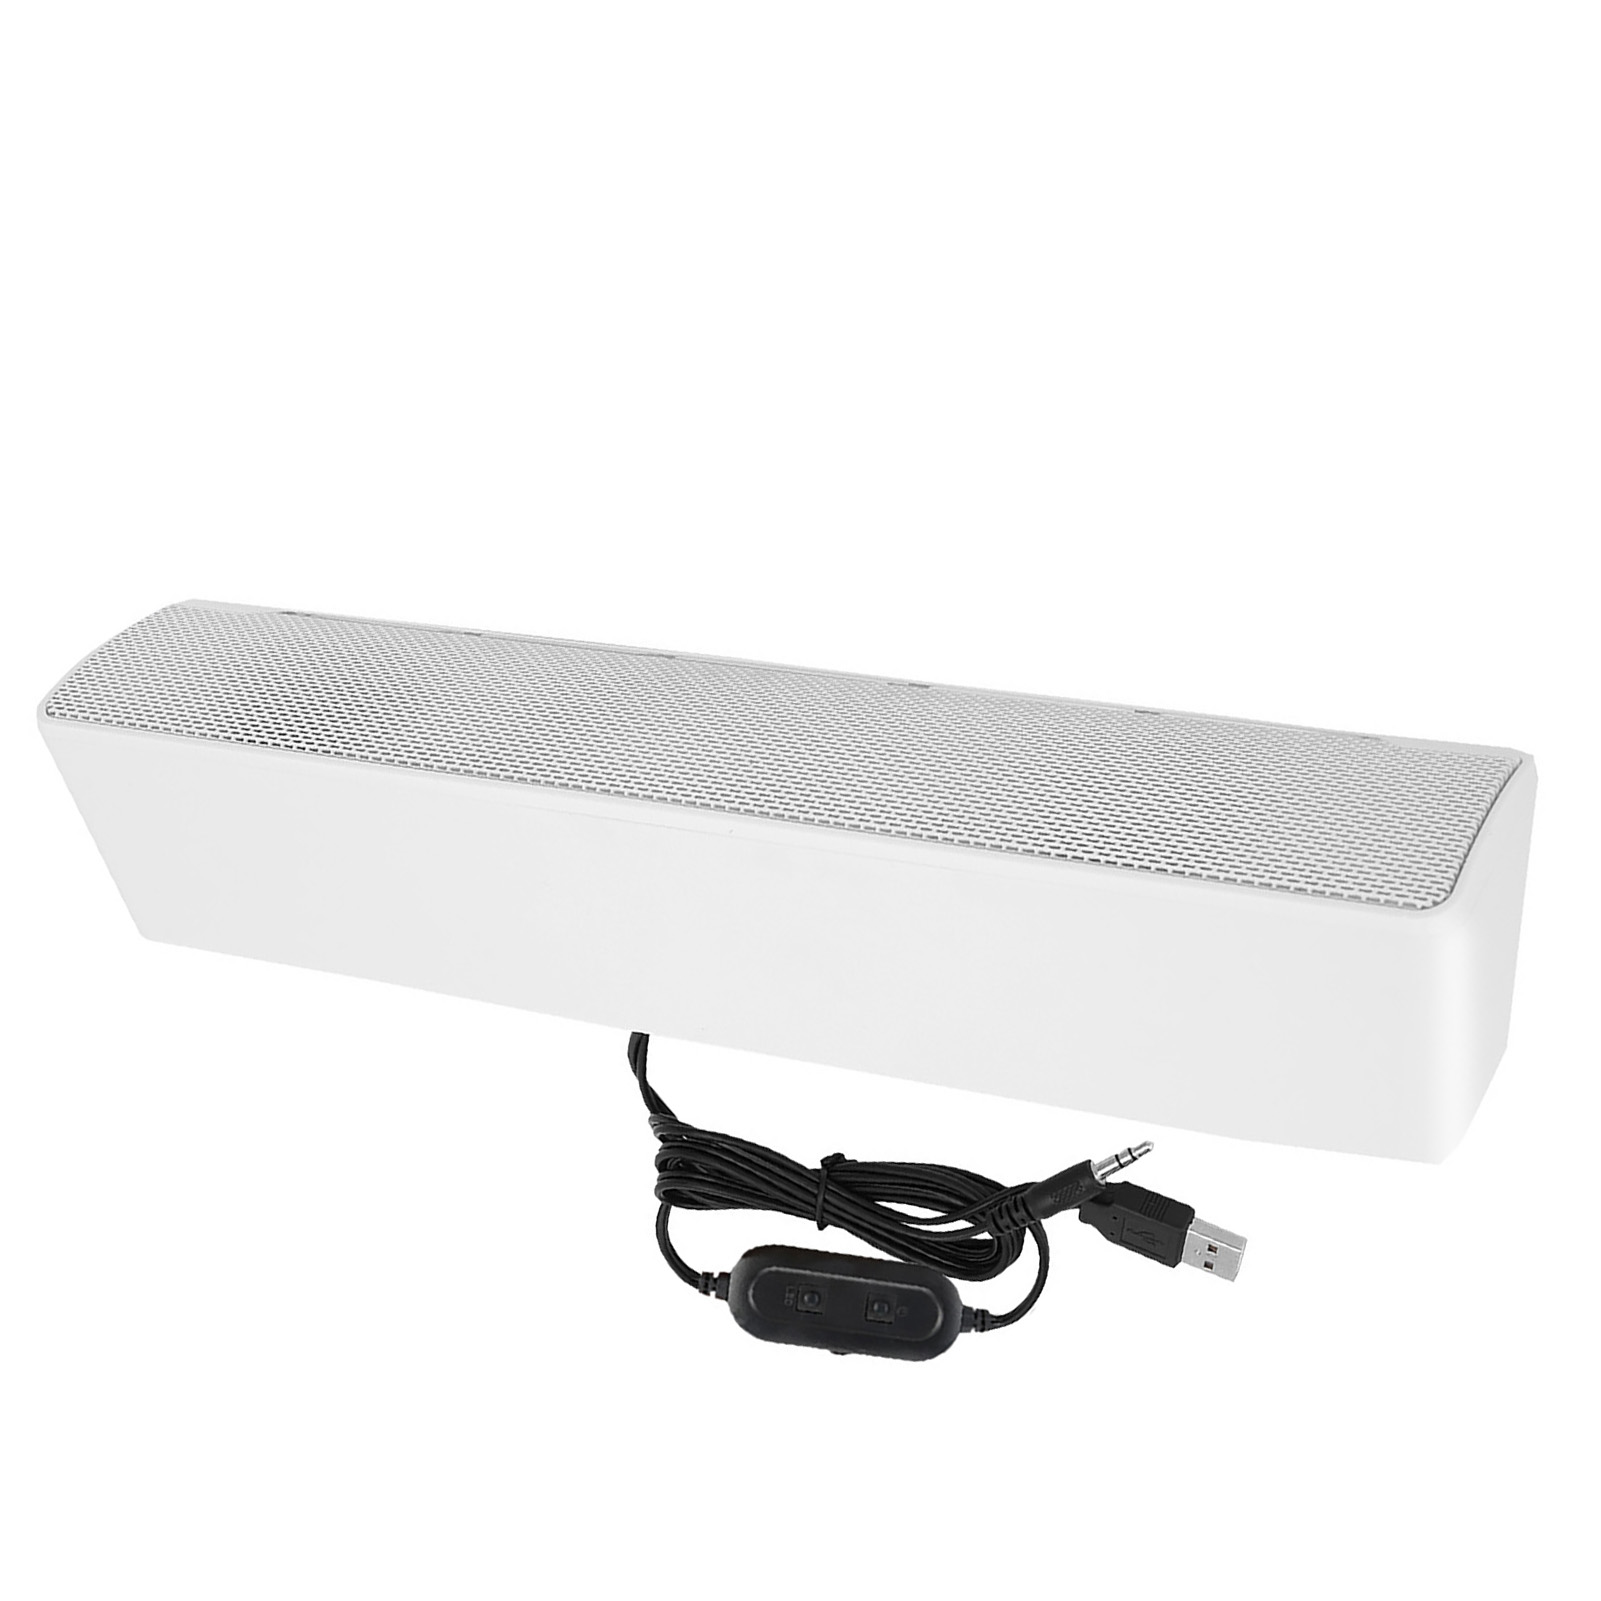 USB Sound Bar TV Soundbar Wired and Wireless Bluetooth Home Theater TV Speaker